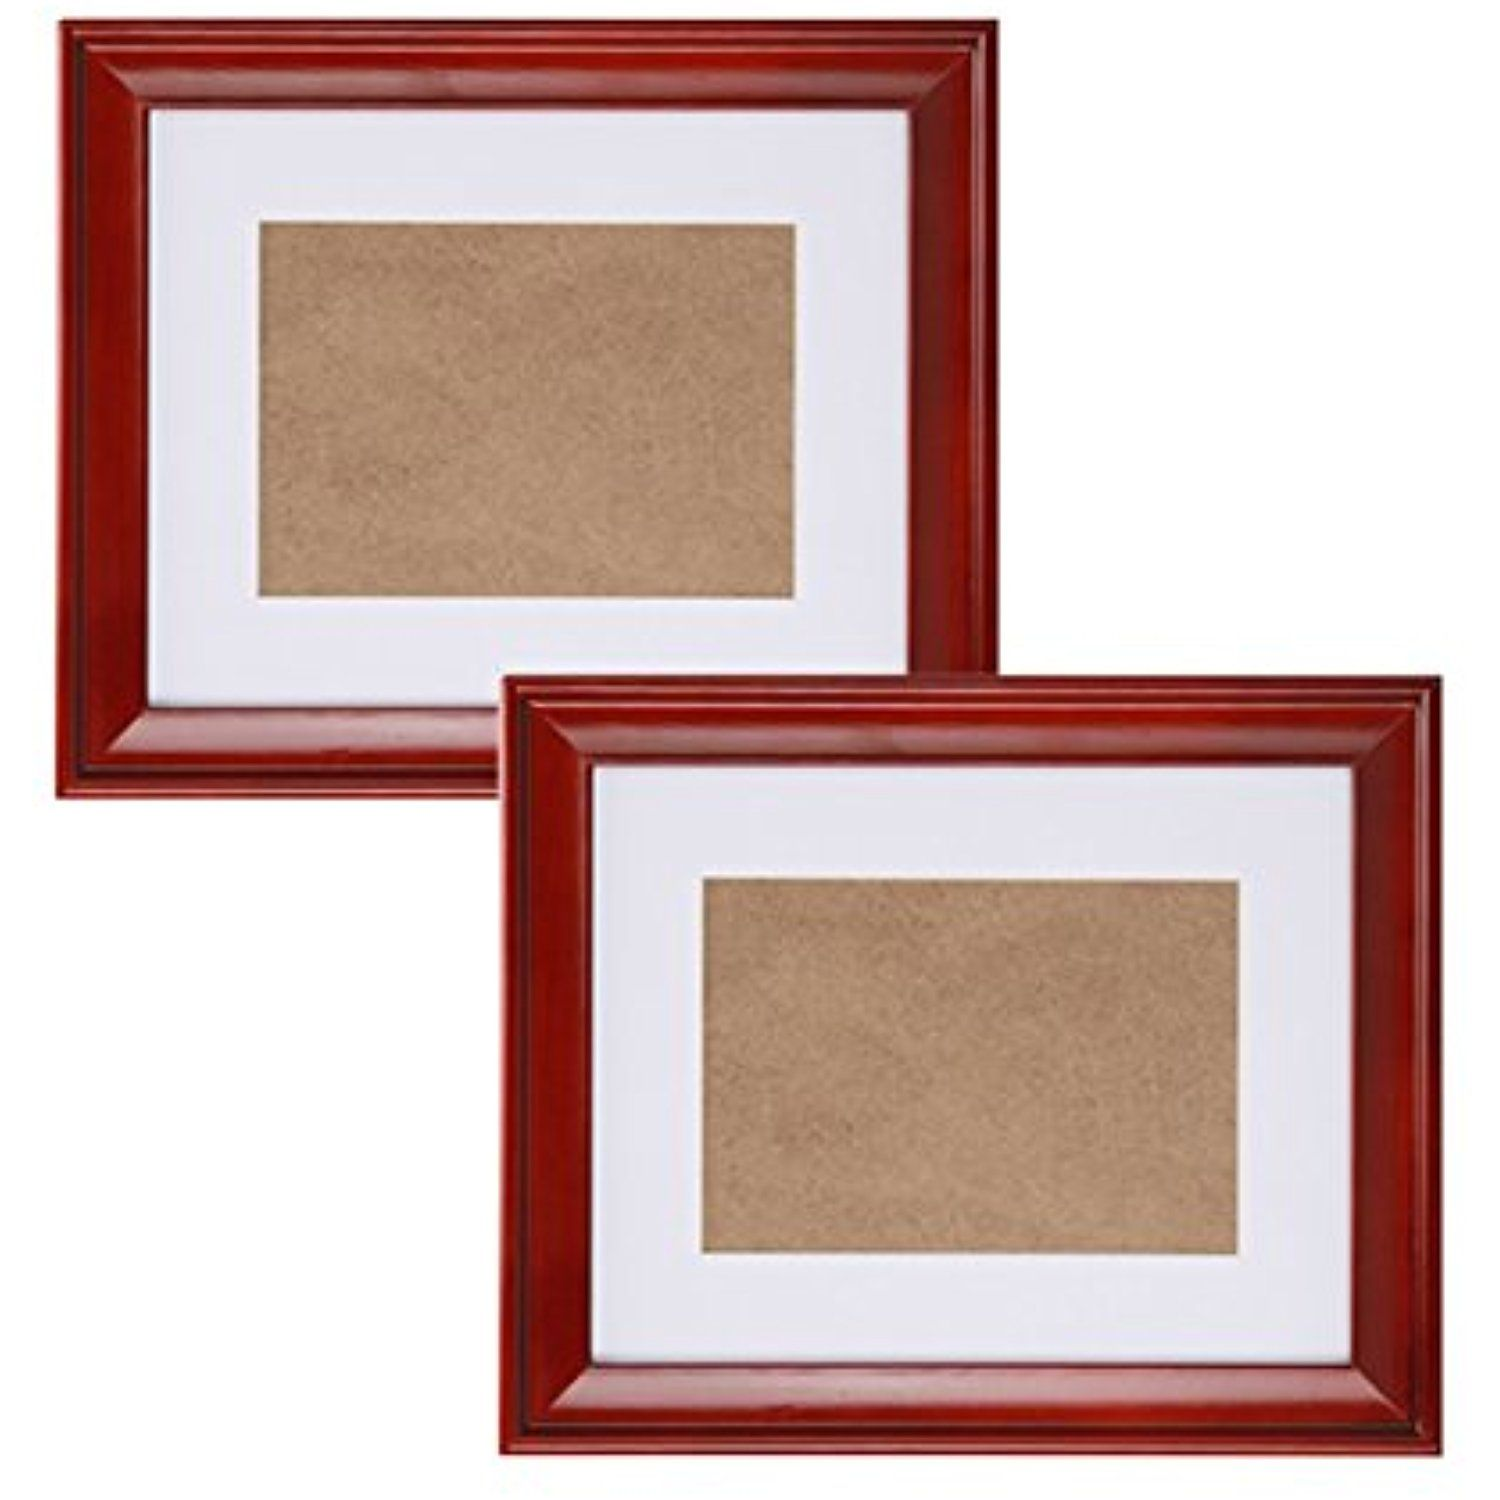 Fastnova 7x9 Inch Wide Cherry Red Wood Picture Frames Made To Display Picture 3 5x5 With Mat Or 5x7 Withou Picture Mounting Wood Picture Frames Picture Display